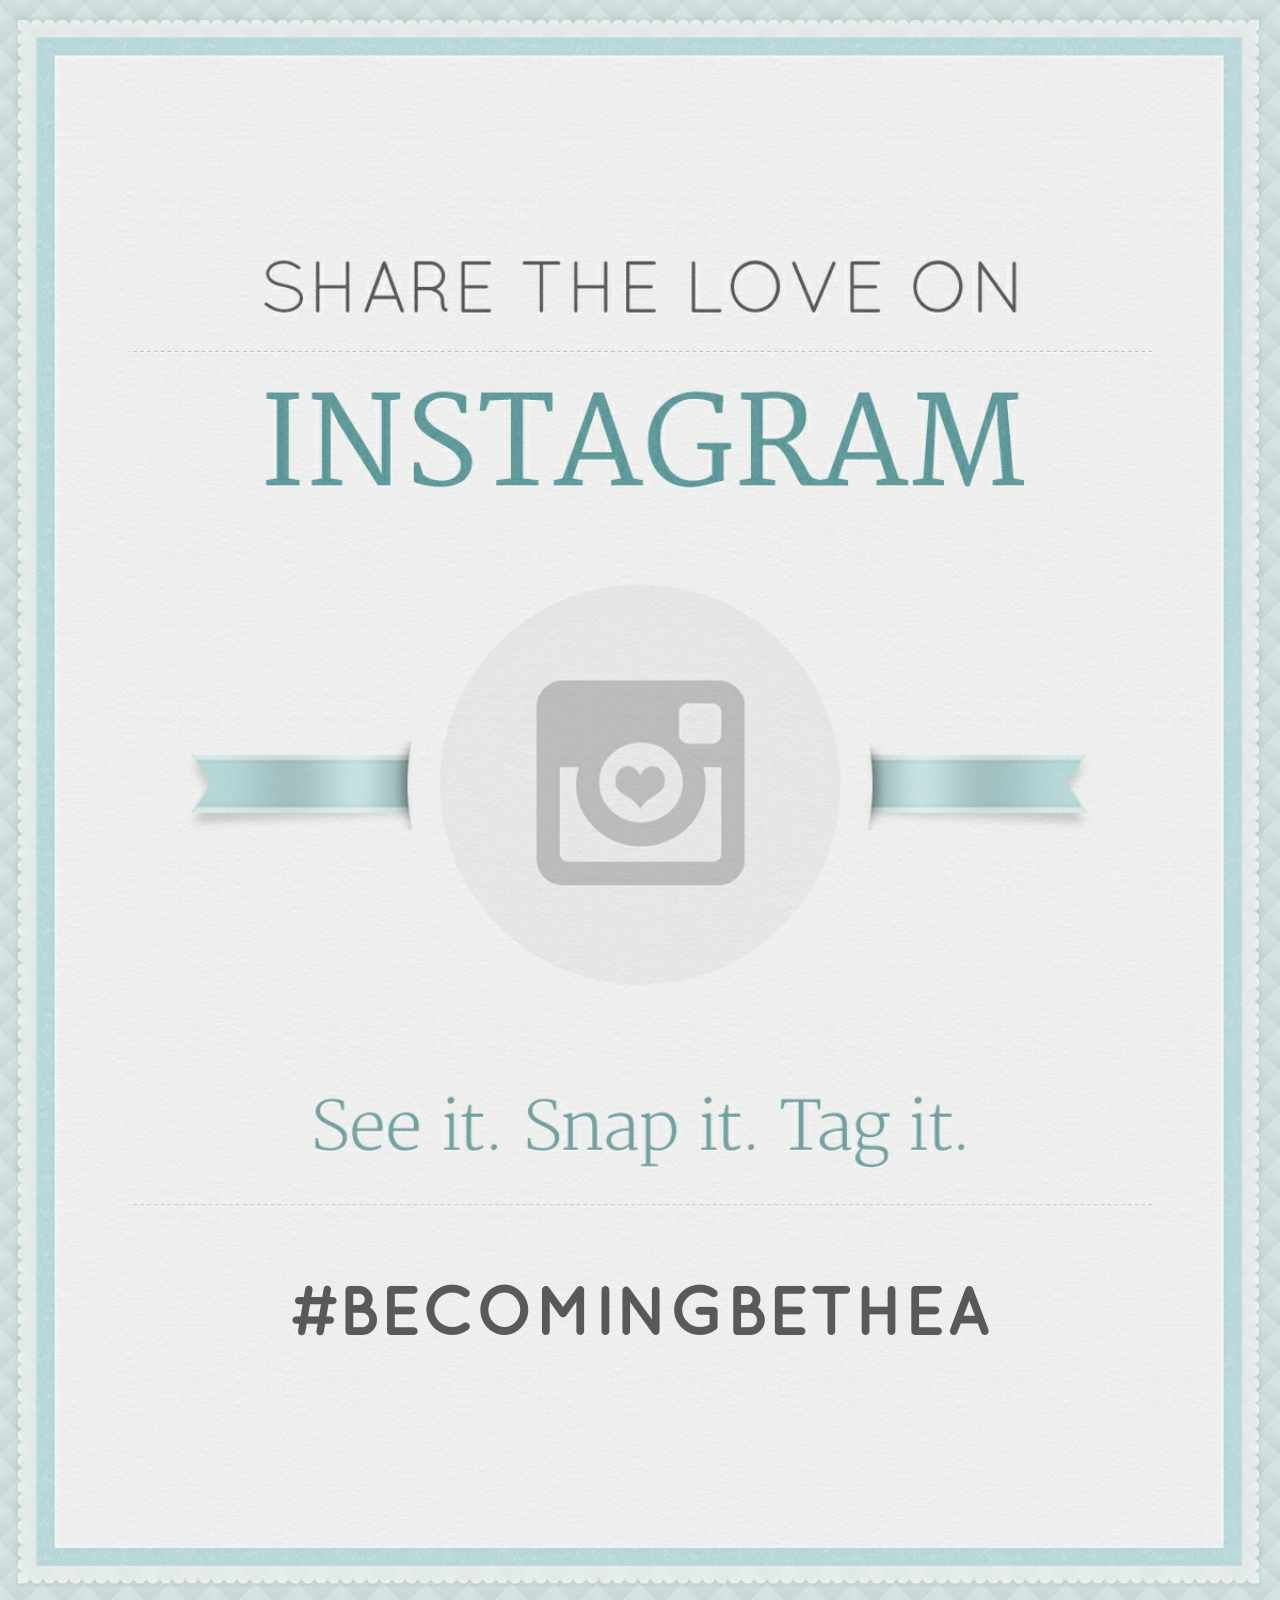 Wedding Hashtags Generator.Free Wedding Hashtag Generator Ewedding Wedding Hashtag